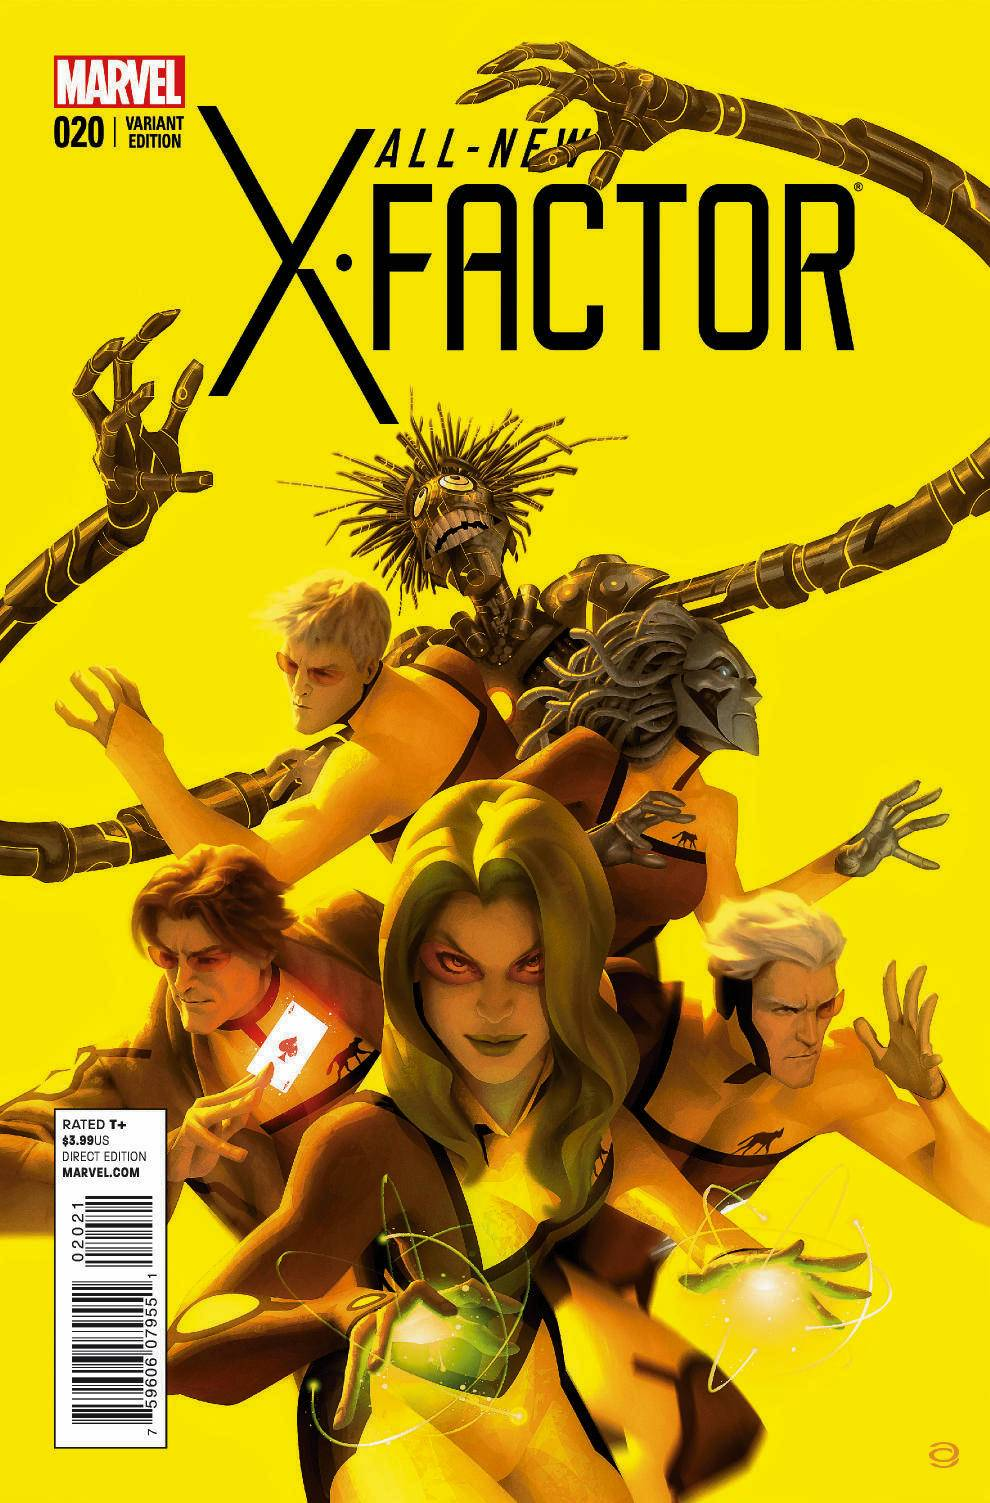 All-New X-Factor Vol 1 20 Final Issue Variant.jpg